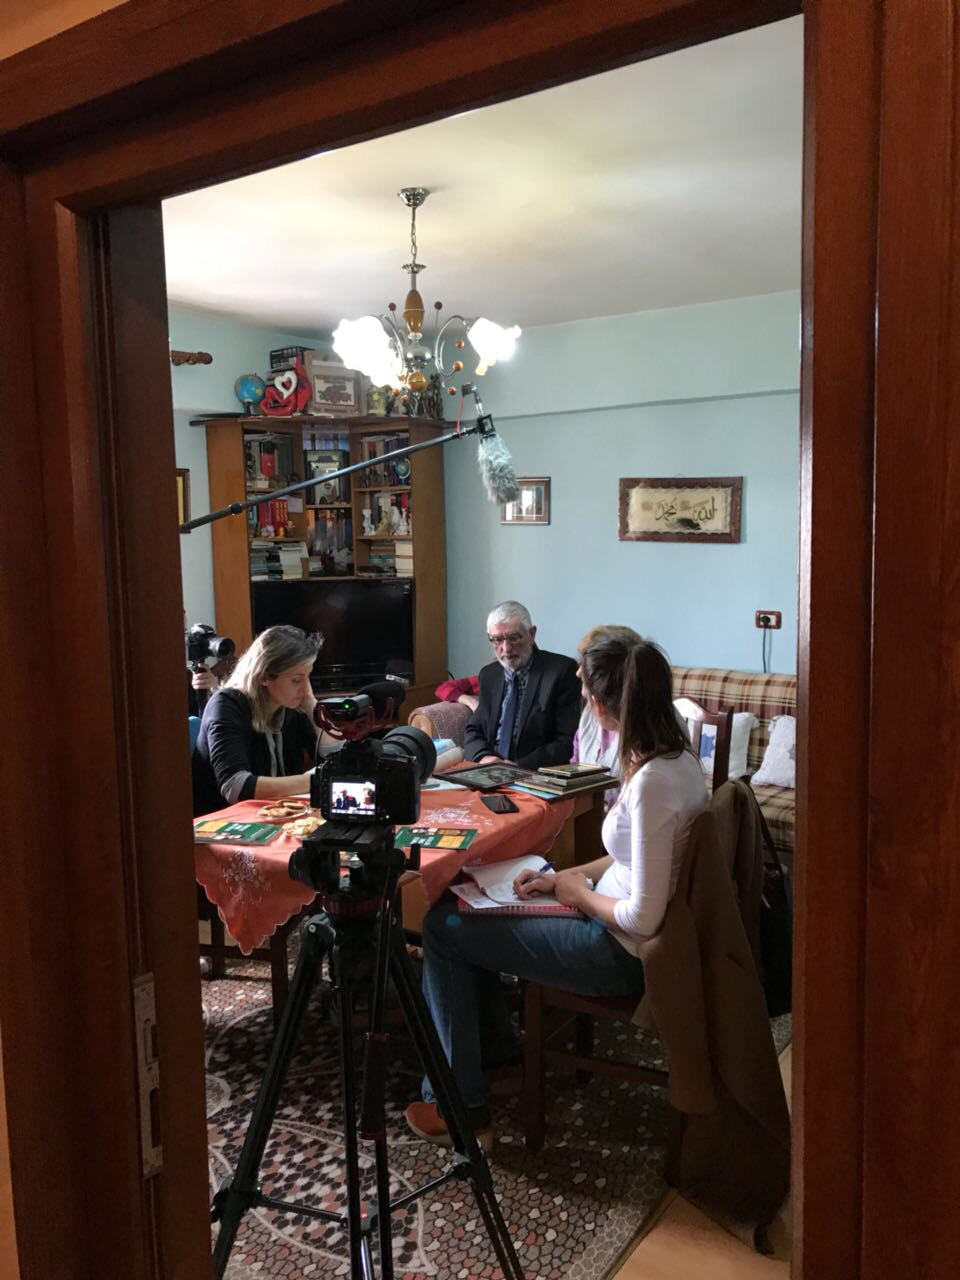 Interviewing the poet Ylber Merdani in Korce, at his house together with his wife Shpresa Merdani.